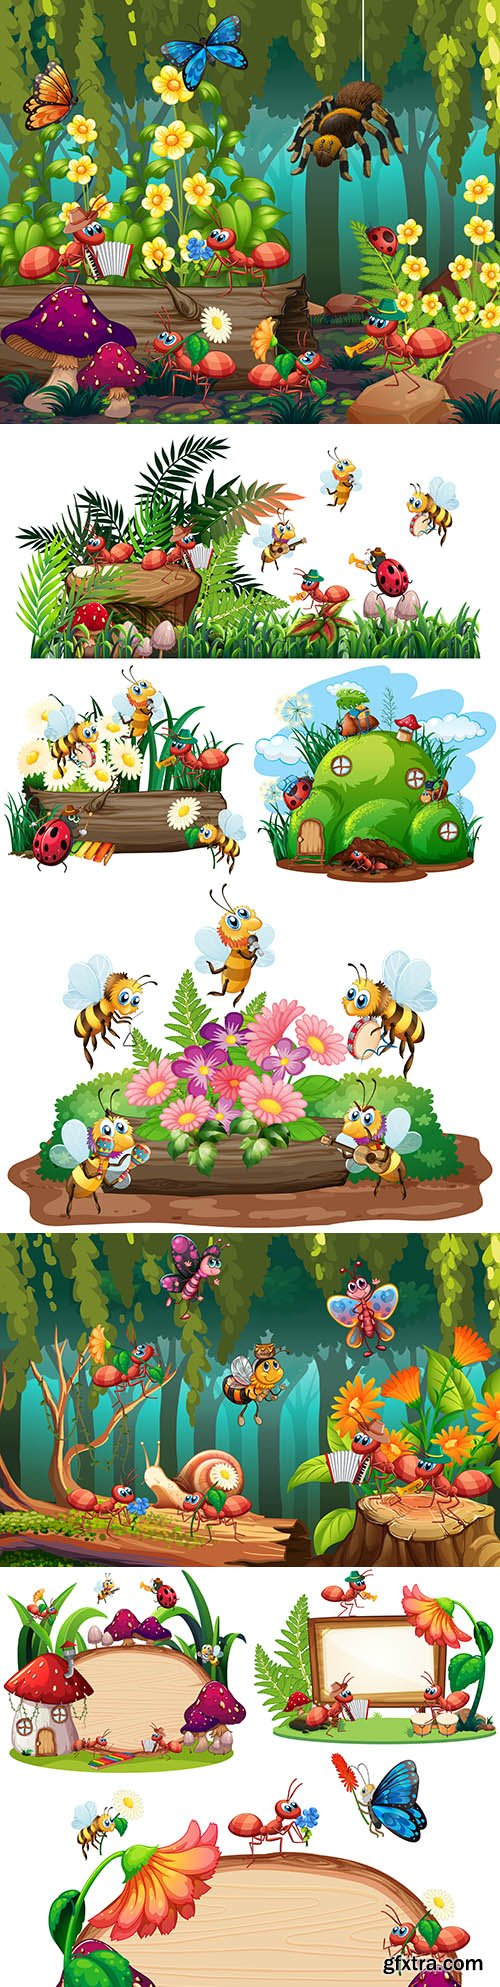 Fabulous forest landscape with cartoon insects and animals